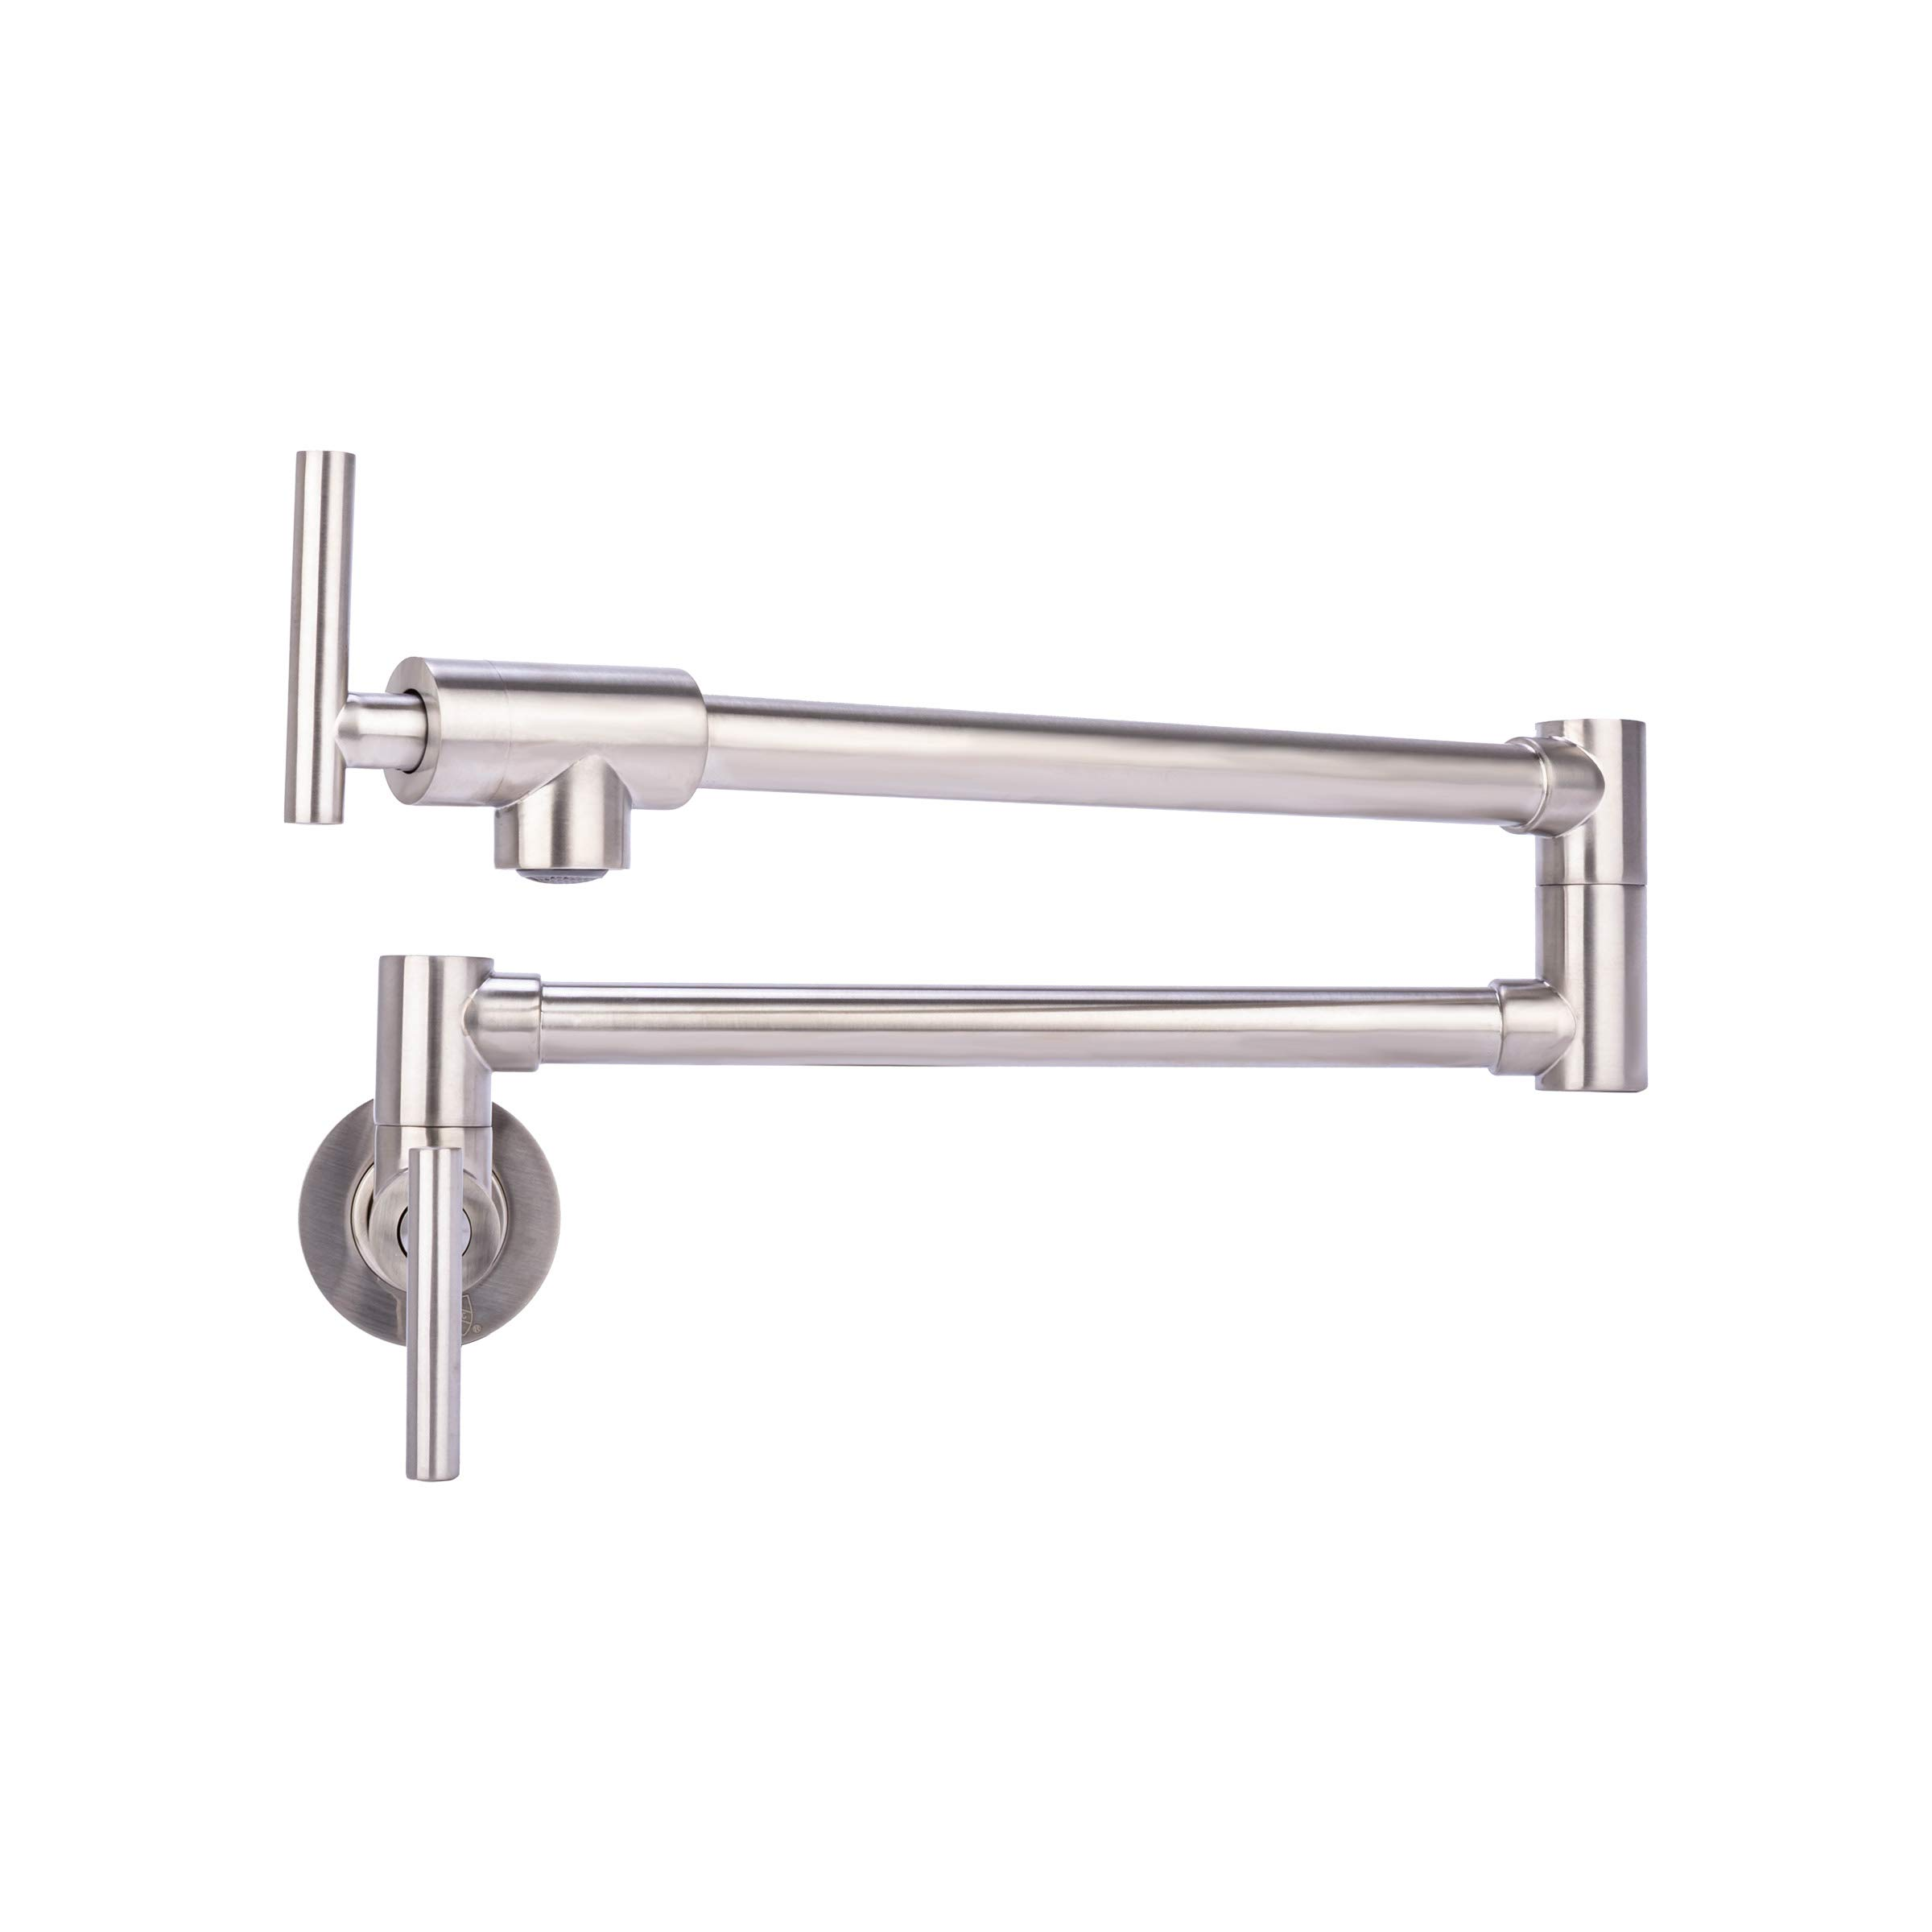 Brienza by Italia, K62202-BN, Contemporary Pot Filler Kitchen Faucet in Brushed Nickel